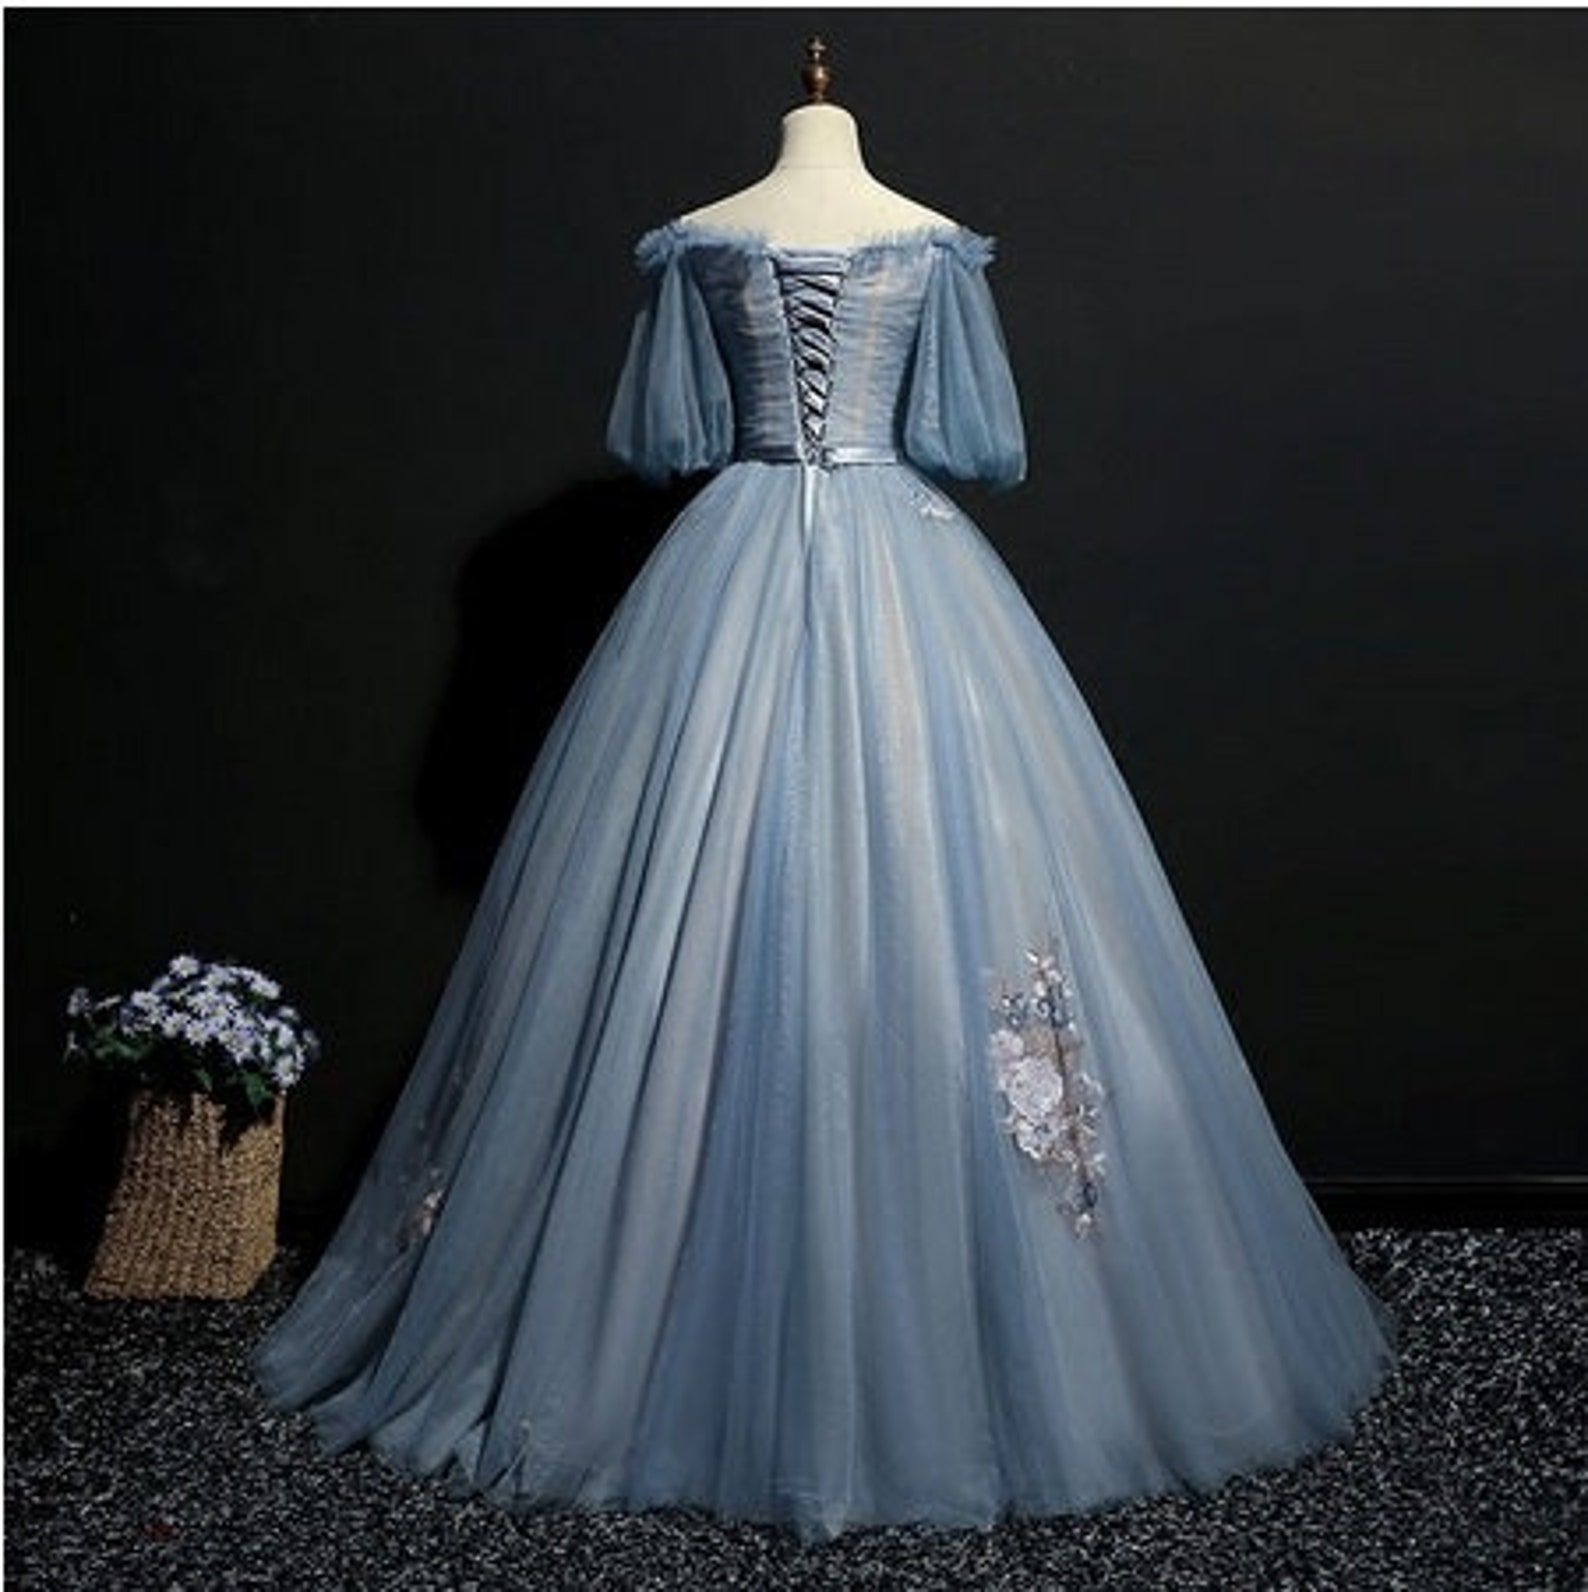 Light Ash Blue Vintage Cosplay Ball Gown Medieval Dress Etsy Medieval Dress Ball Dresses Prom Dresses Blue [ 1592 x 1588 Pixel ]